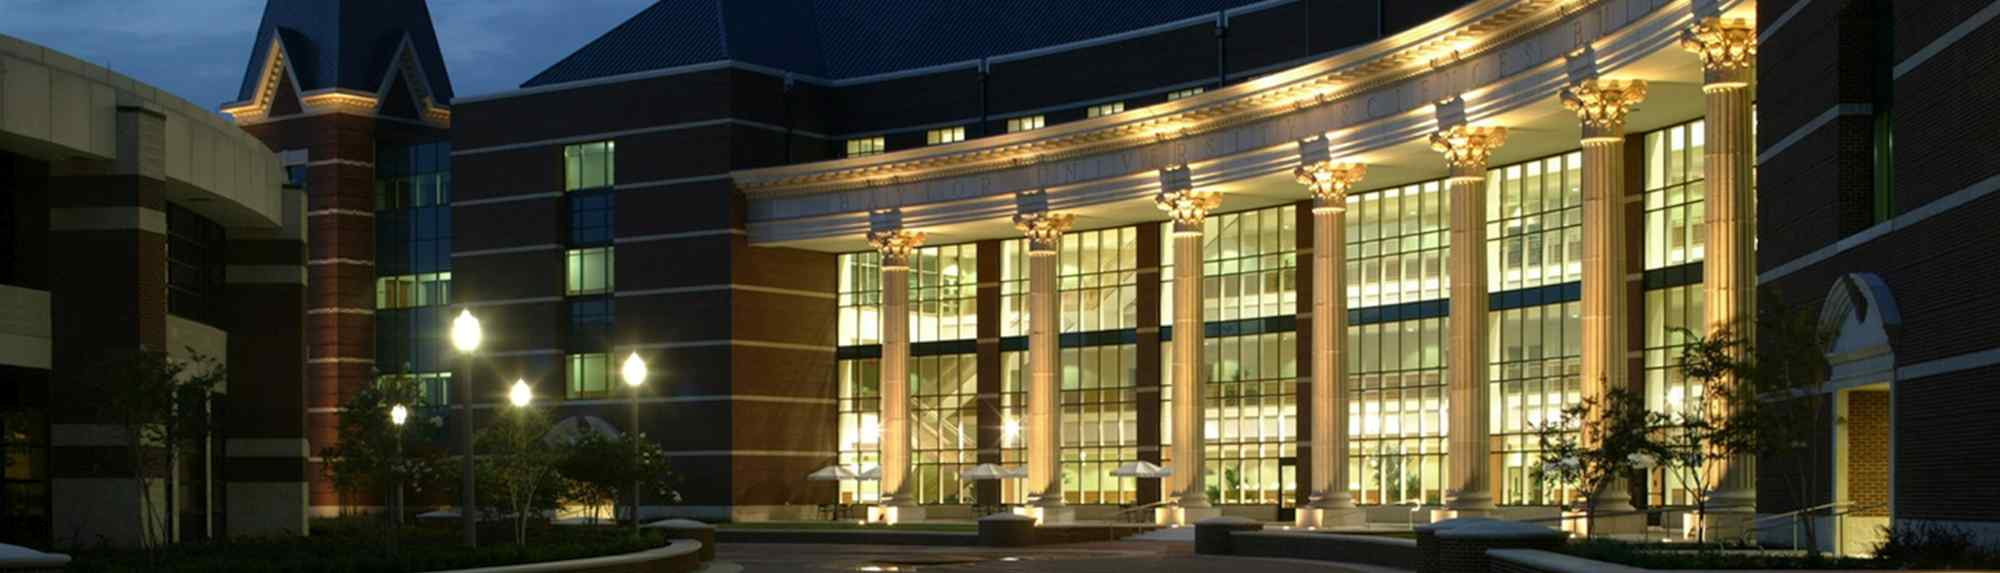 Baylor Science Building